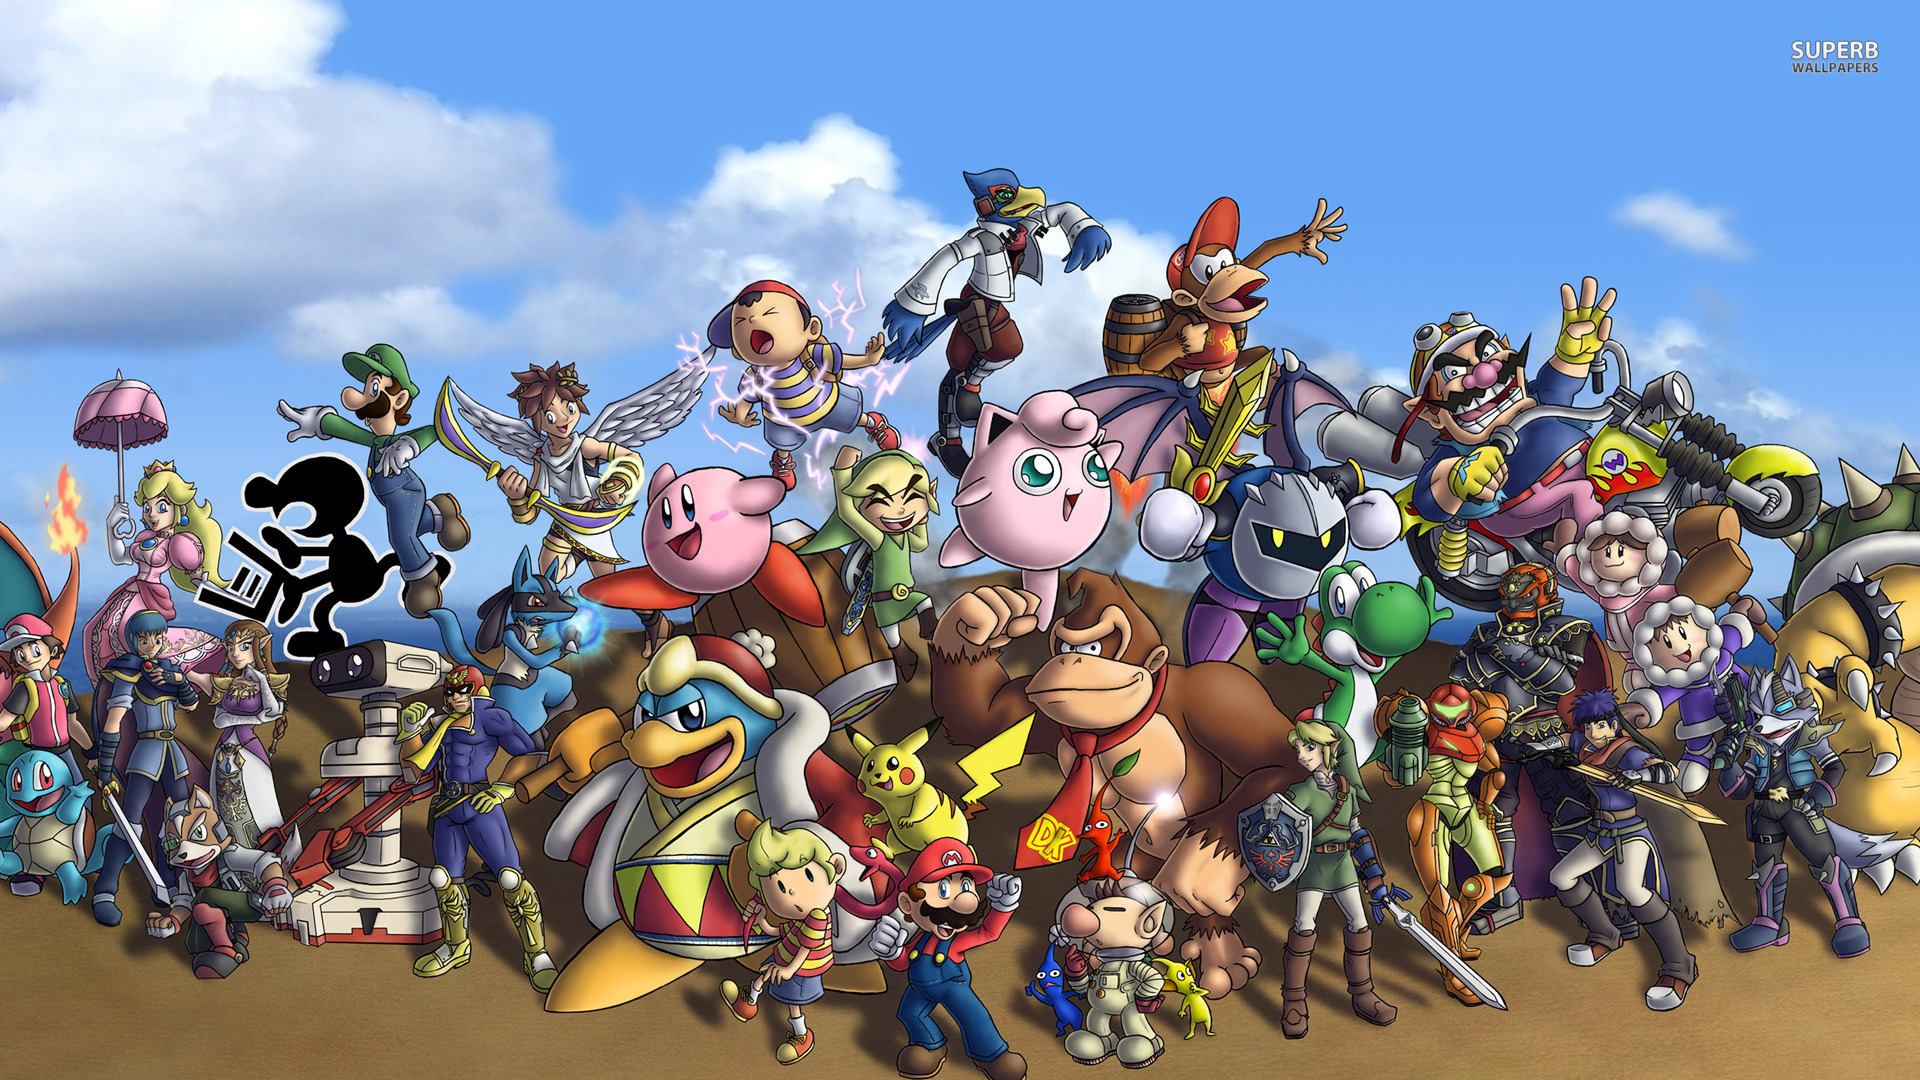 Super Smash Bros Wallpaper 1920x1080 52722